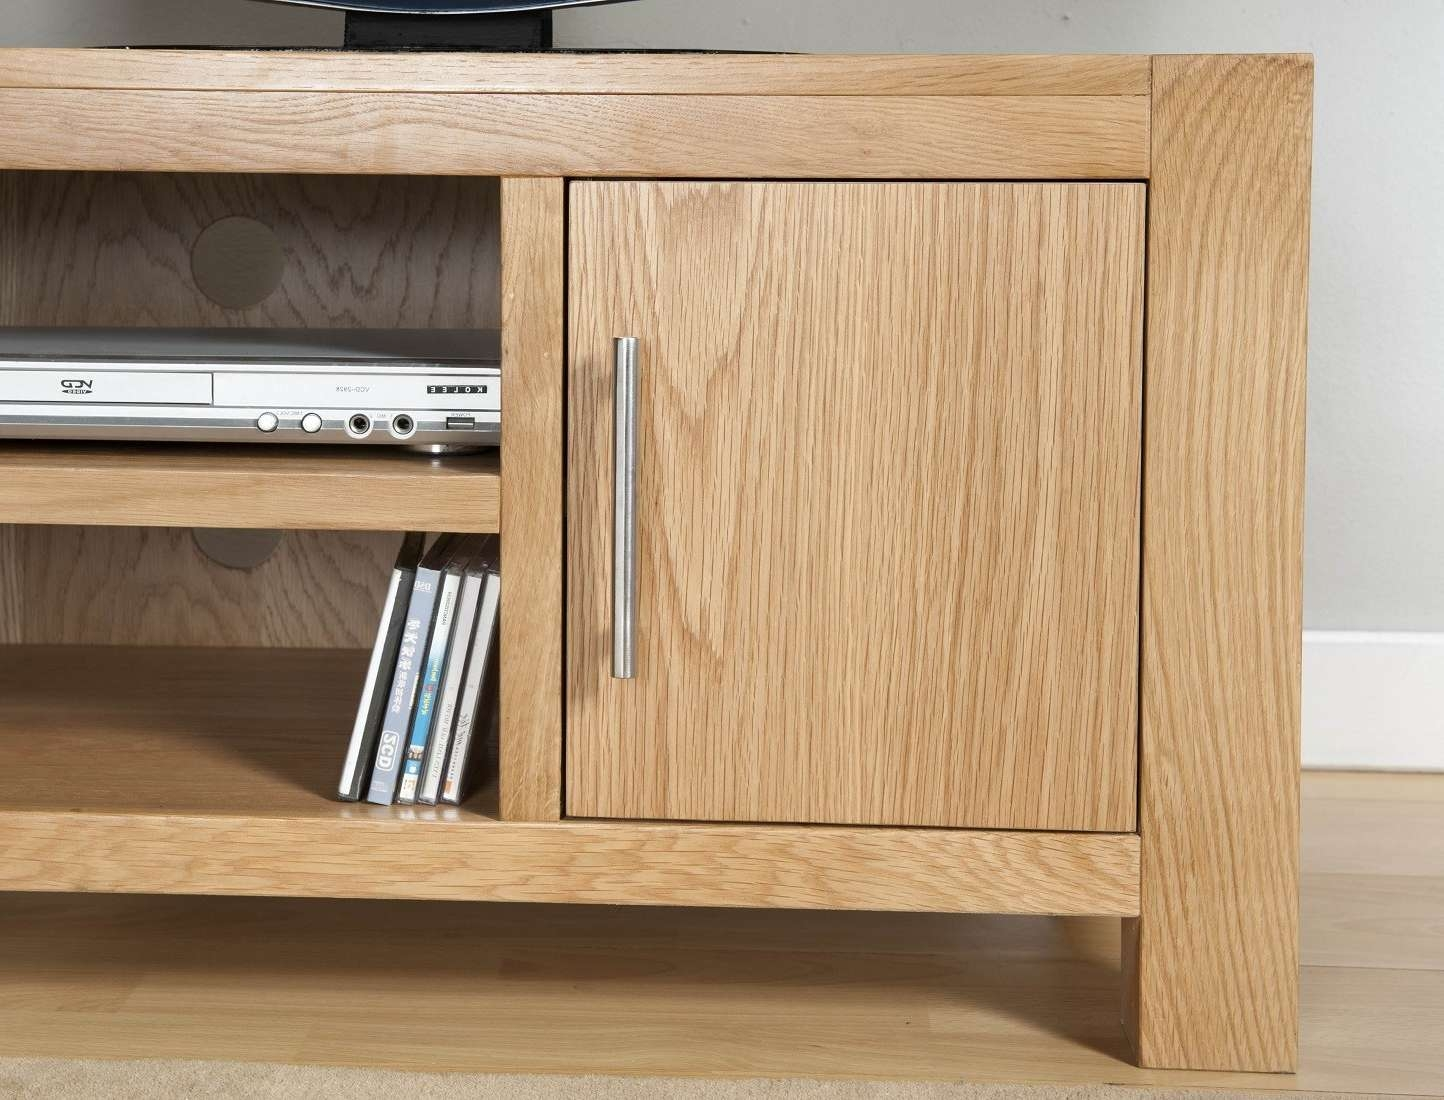 Aylesbury Contemporary Light Oak Small Tv Unit | Oak Furniture Uk With Regard To Light Oak Tv Cabinets (View 6 of 20)